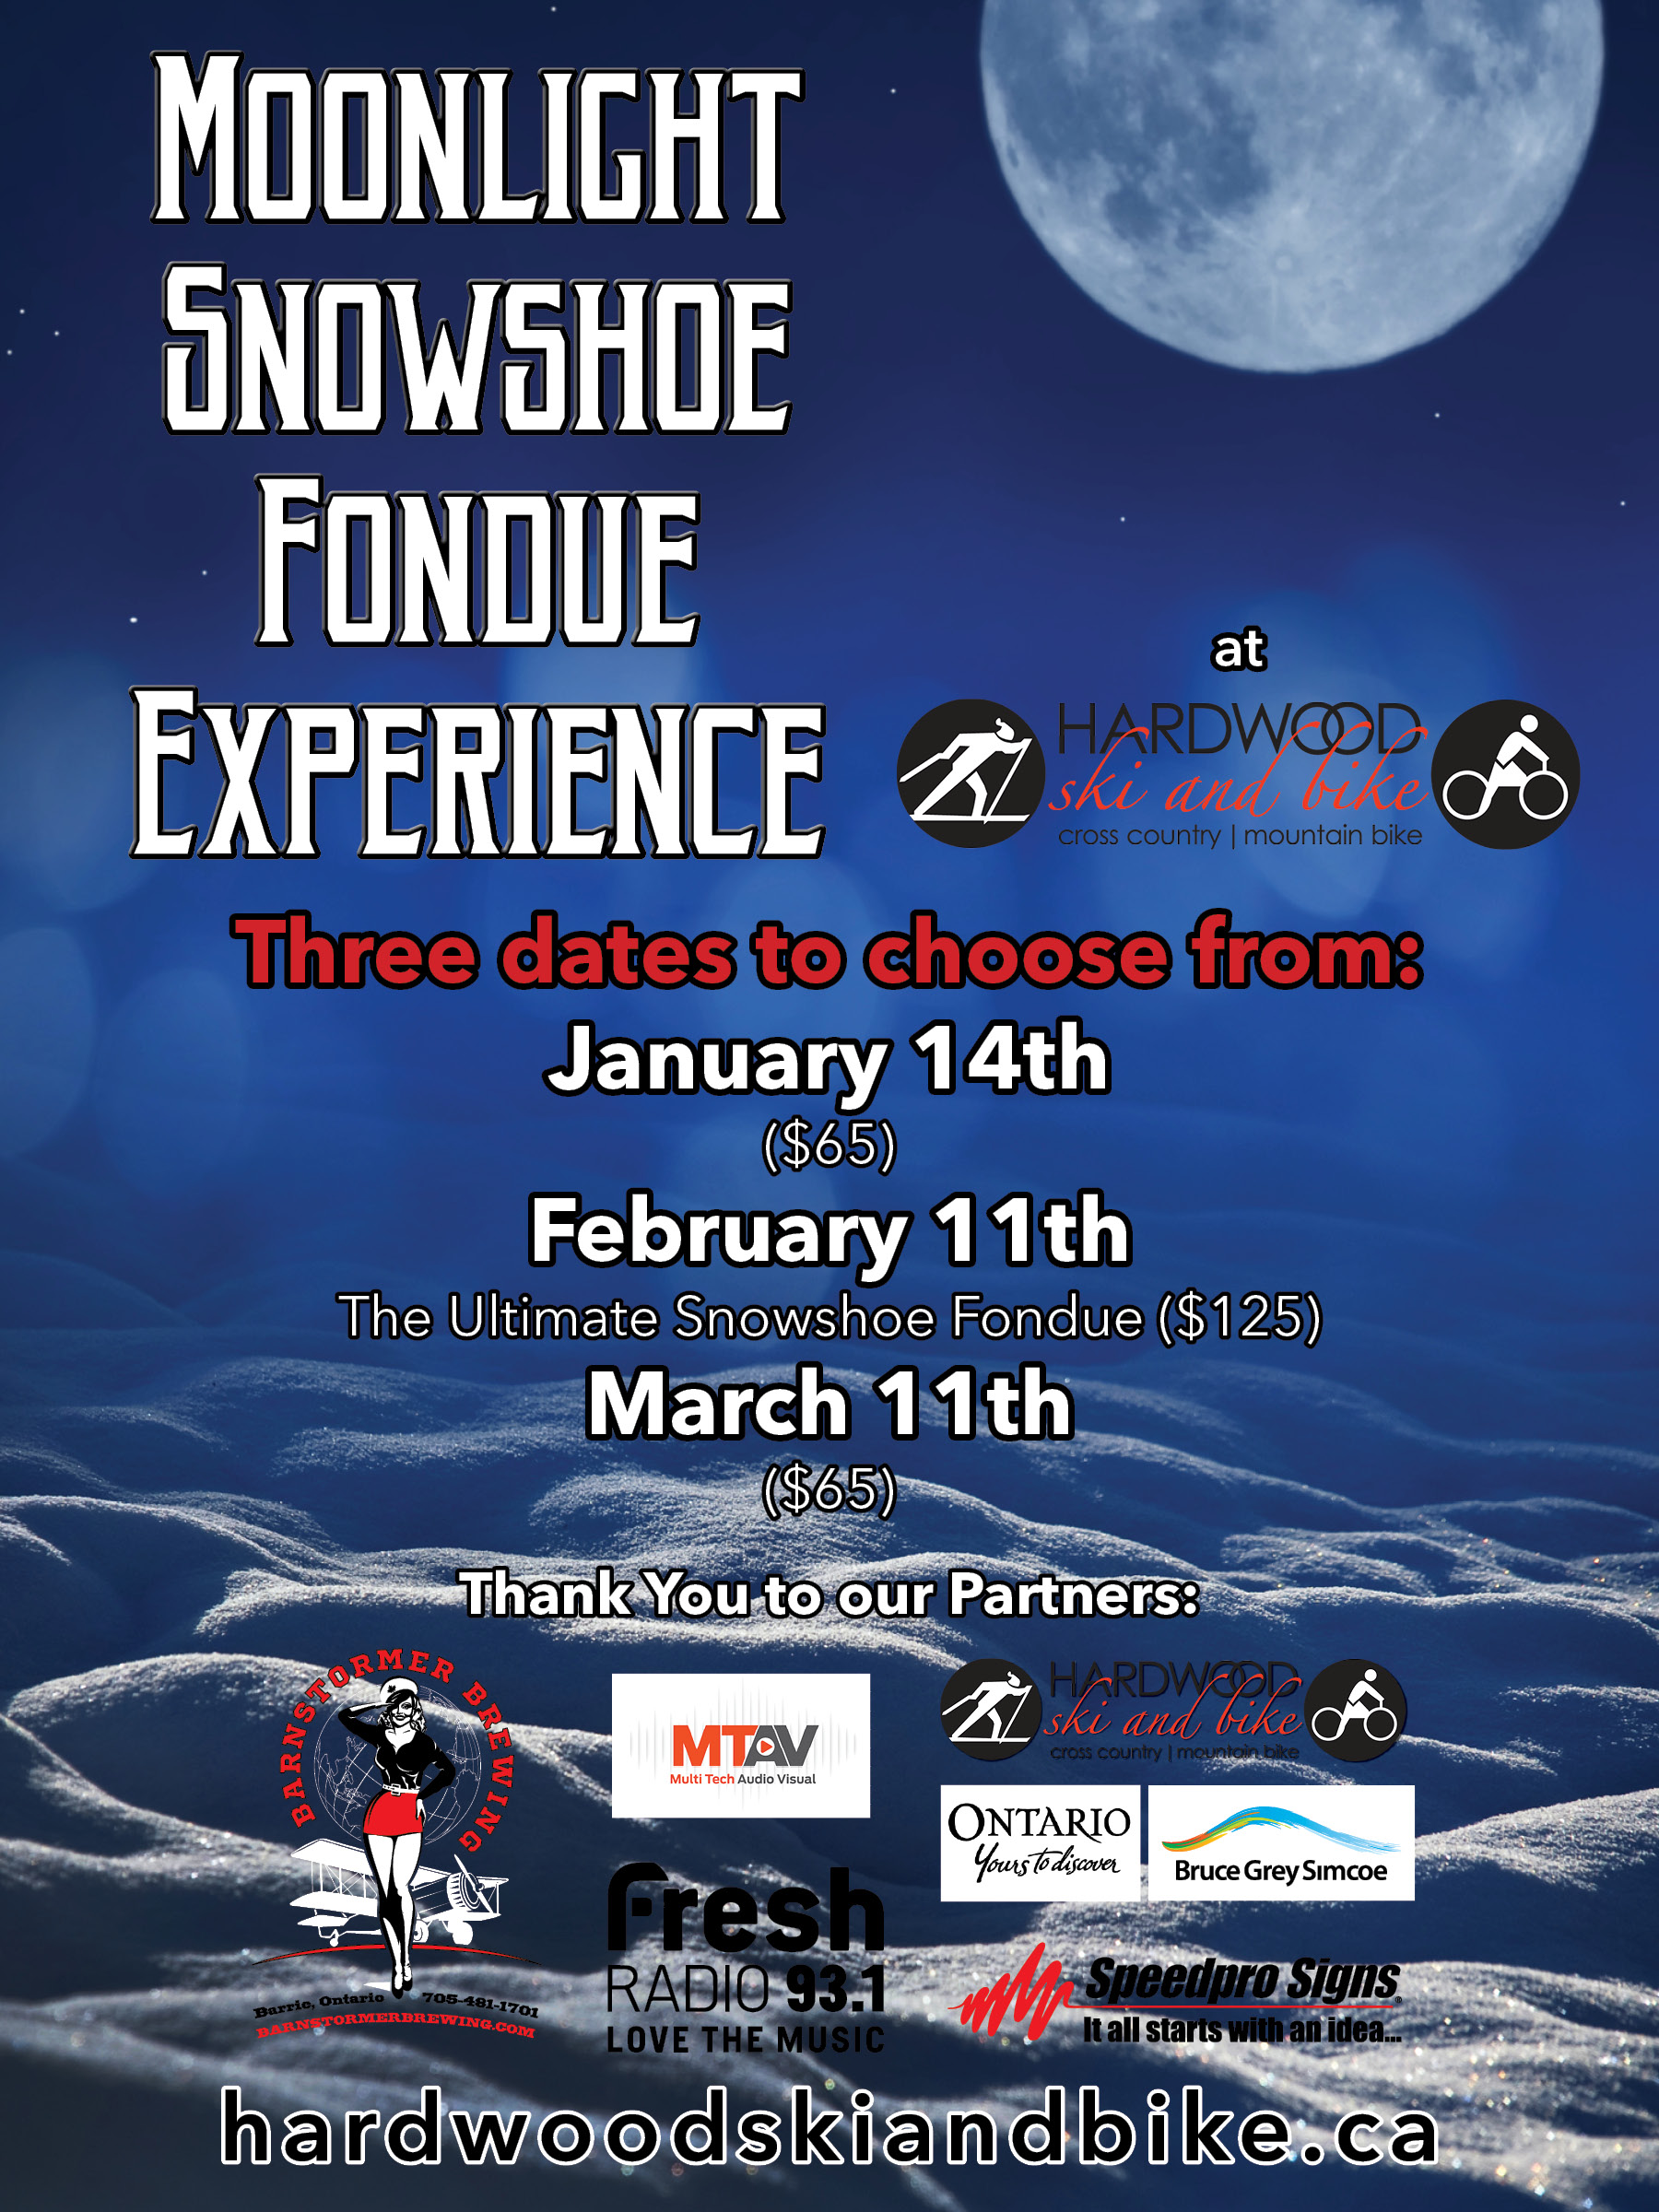 Moonlight Snowshoe Fondue Poster rev 5